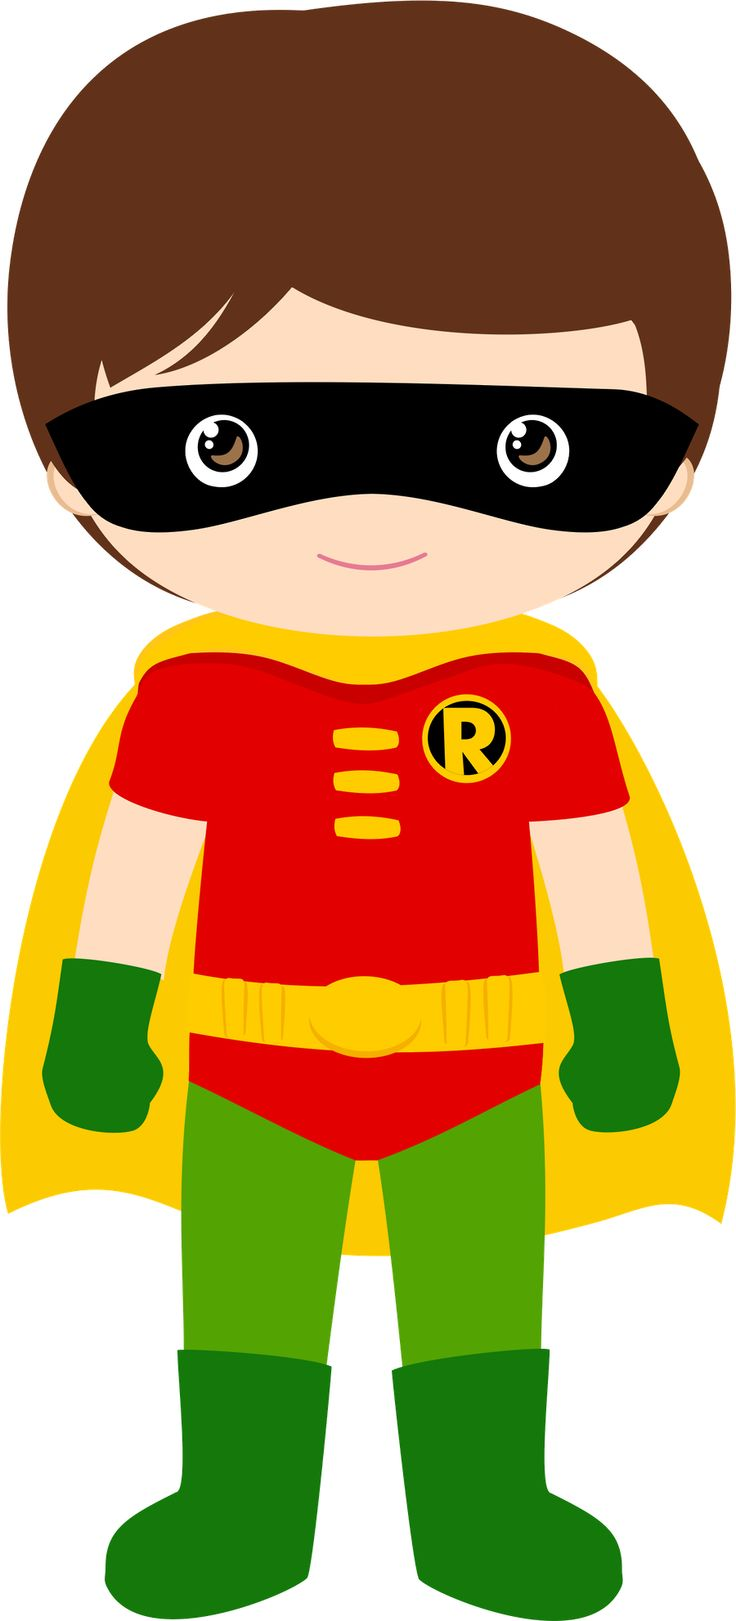 736x1621 Batman And Robin Clipart Gallery Images)